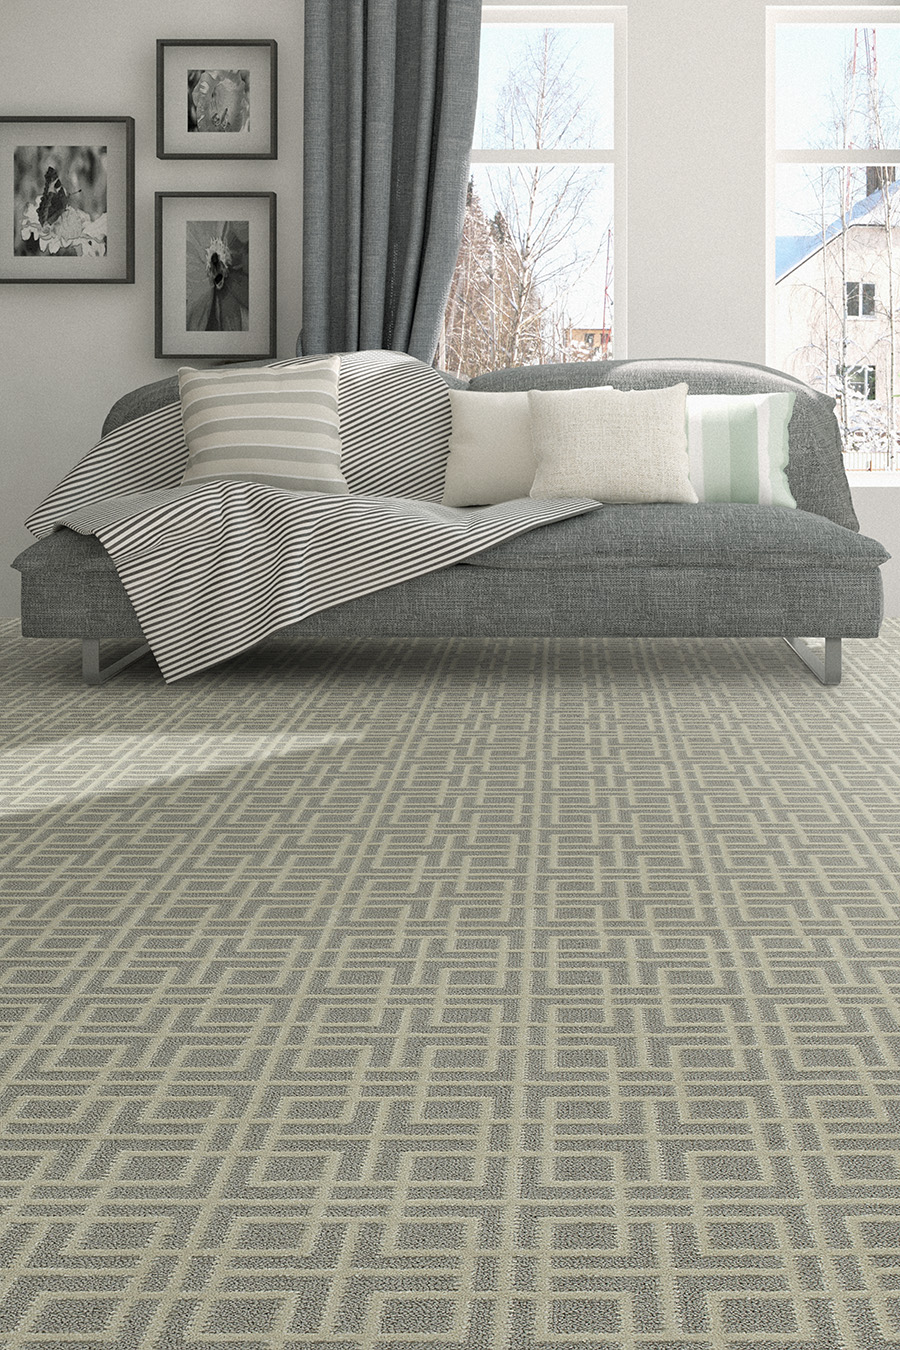 GULISTAN CARPET OFFERED BY MOUERY'S FLOORING